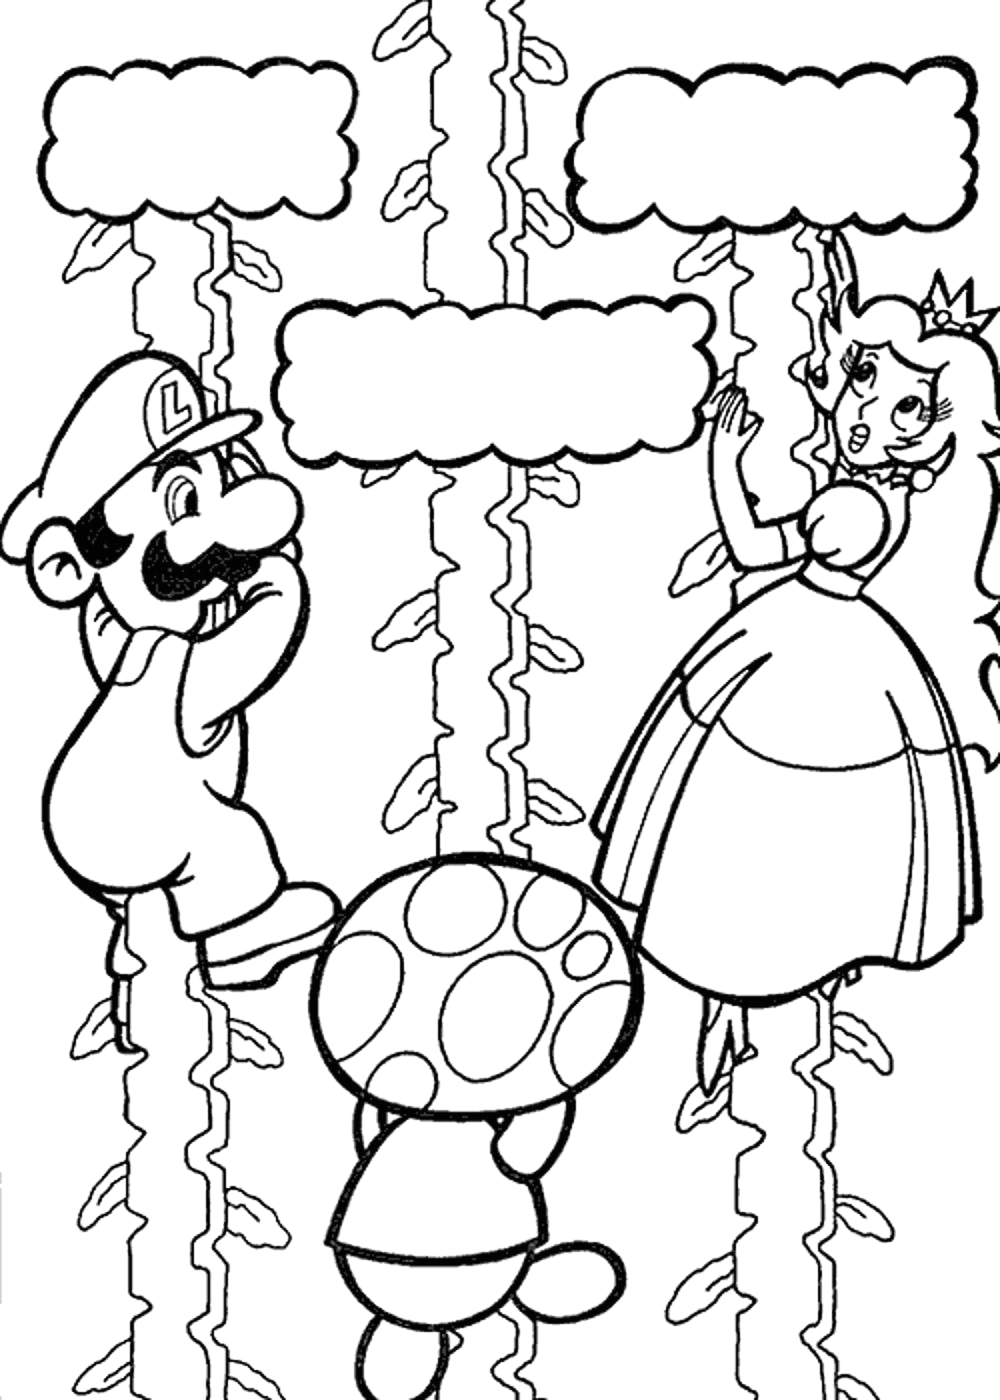 Super Mario Galaxy Coloring Pages to Print Super Mario Galaxy Coloring Pages – Best Apps for Kids